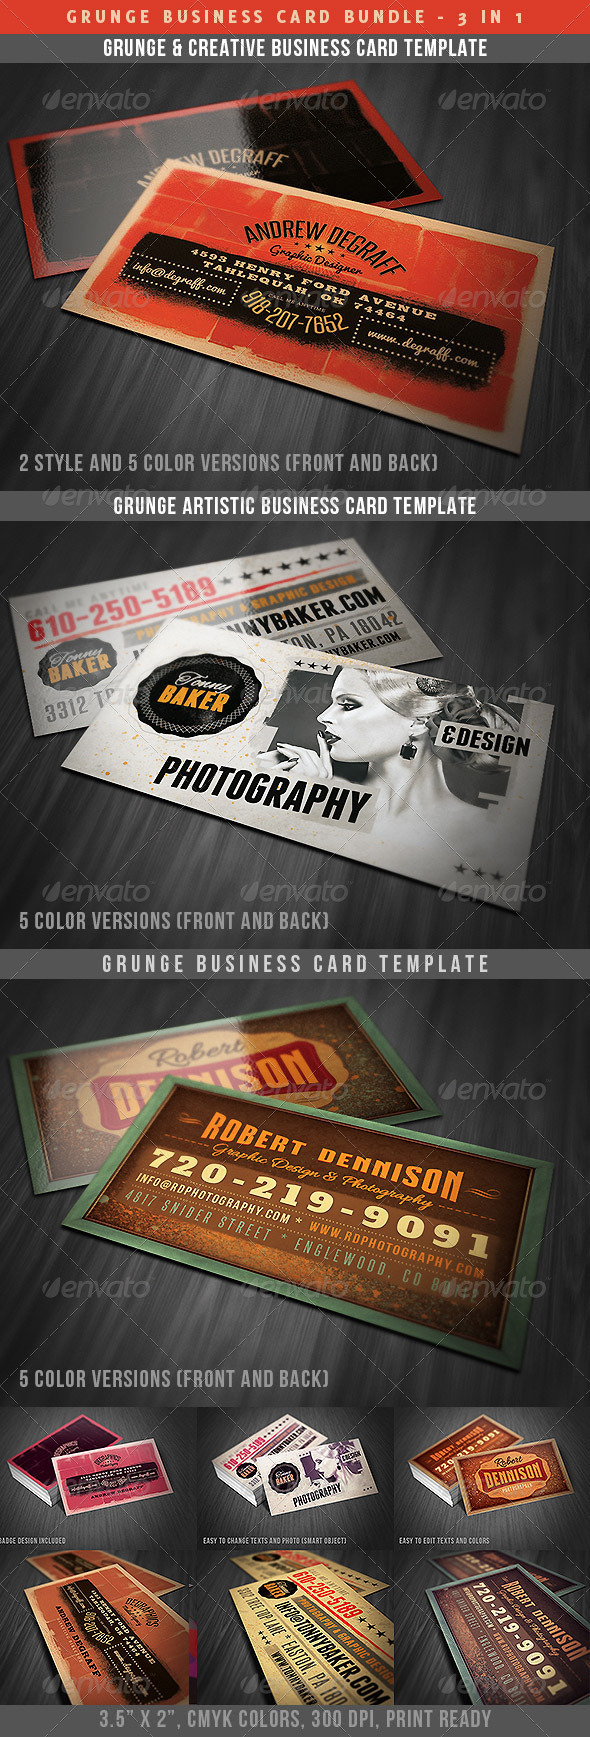 Grunge Business Cards Bundle - Grunge Business Cards